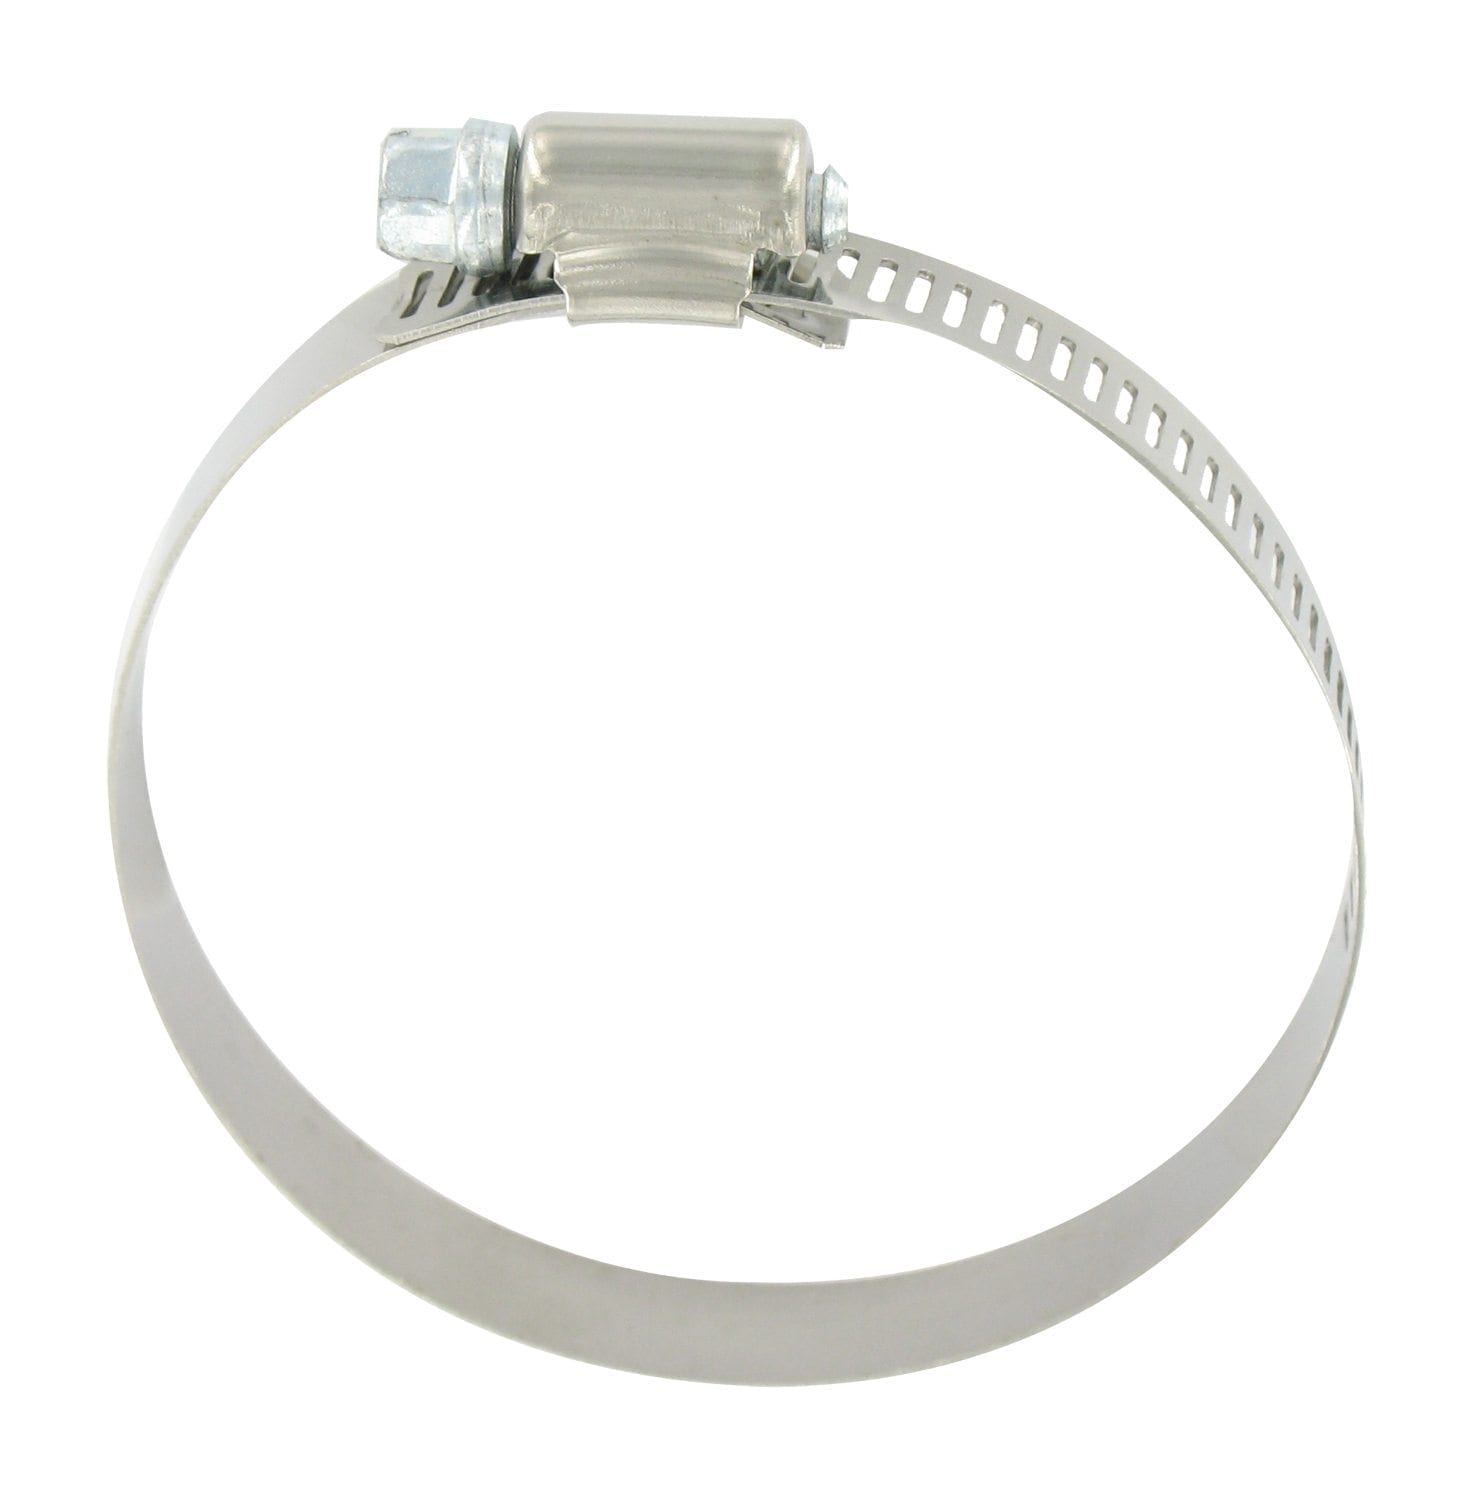 Hose clamp stainless steel quot bagged